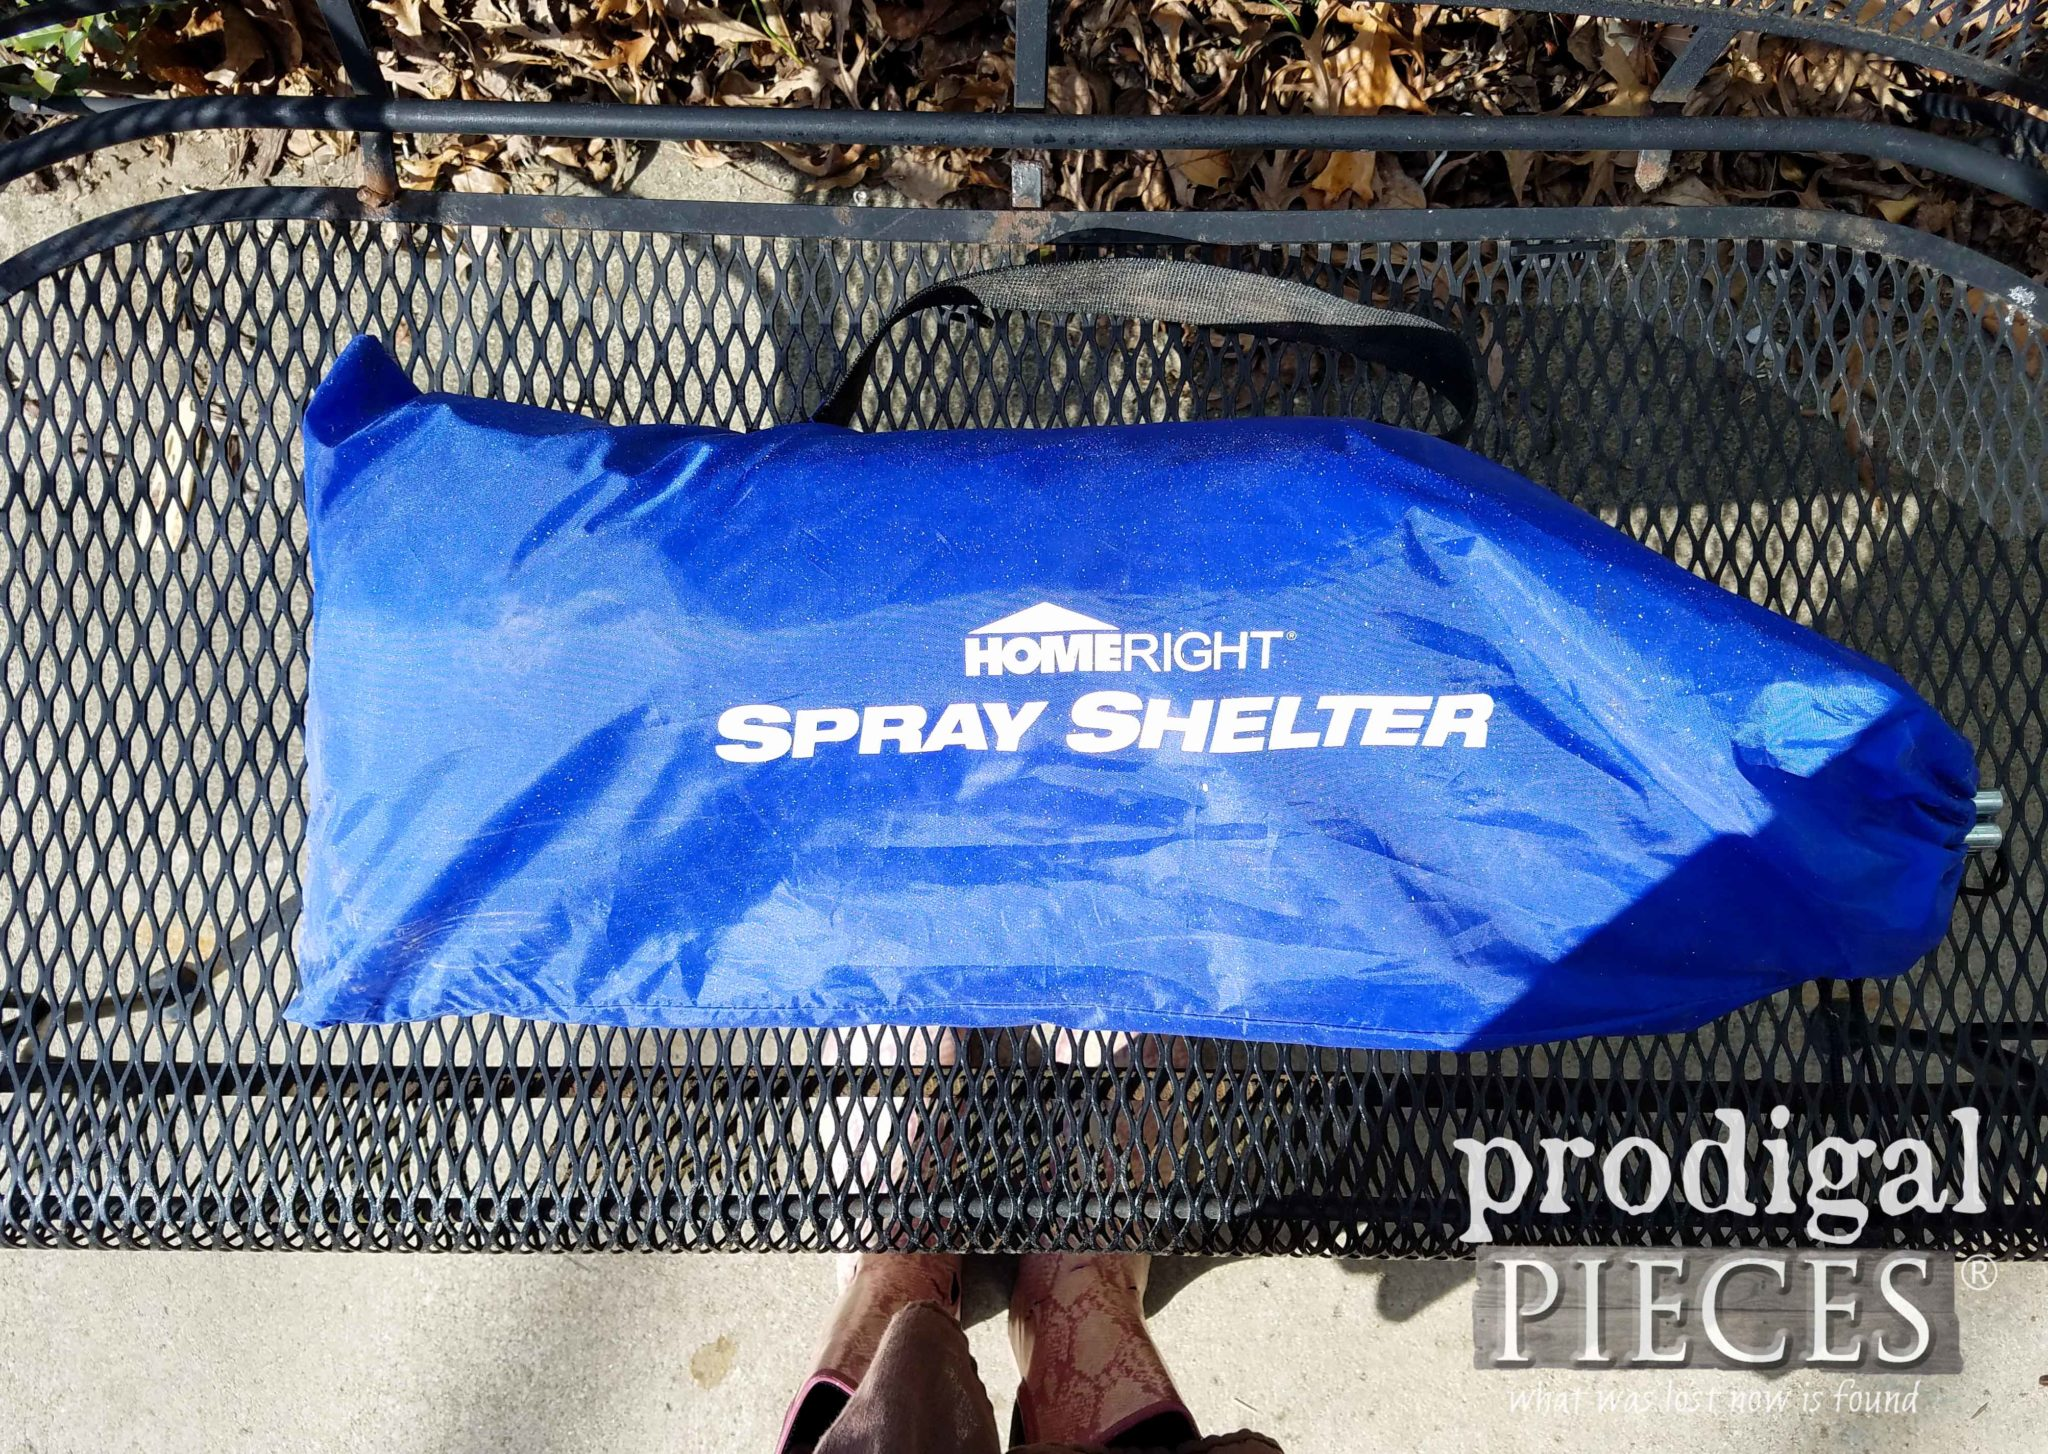 HomeRight Spray Shelter Stores Away Easily | prodigalpieces.com